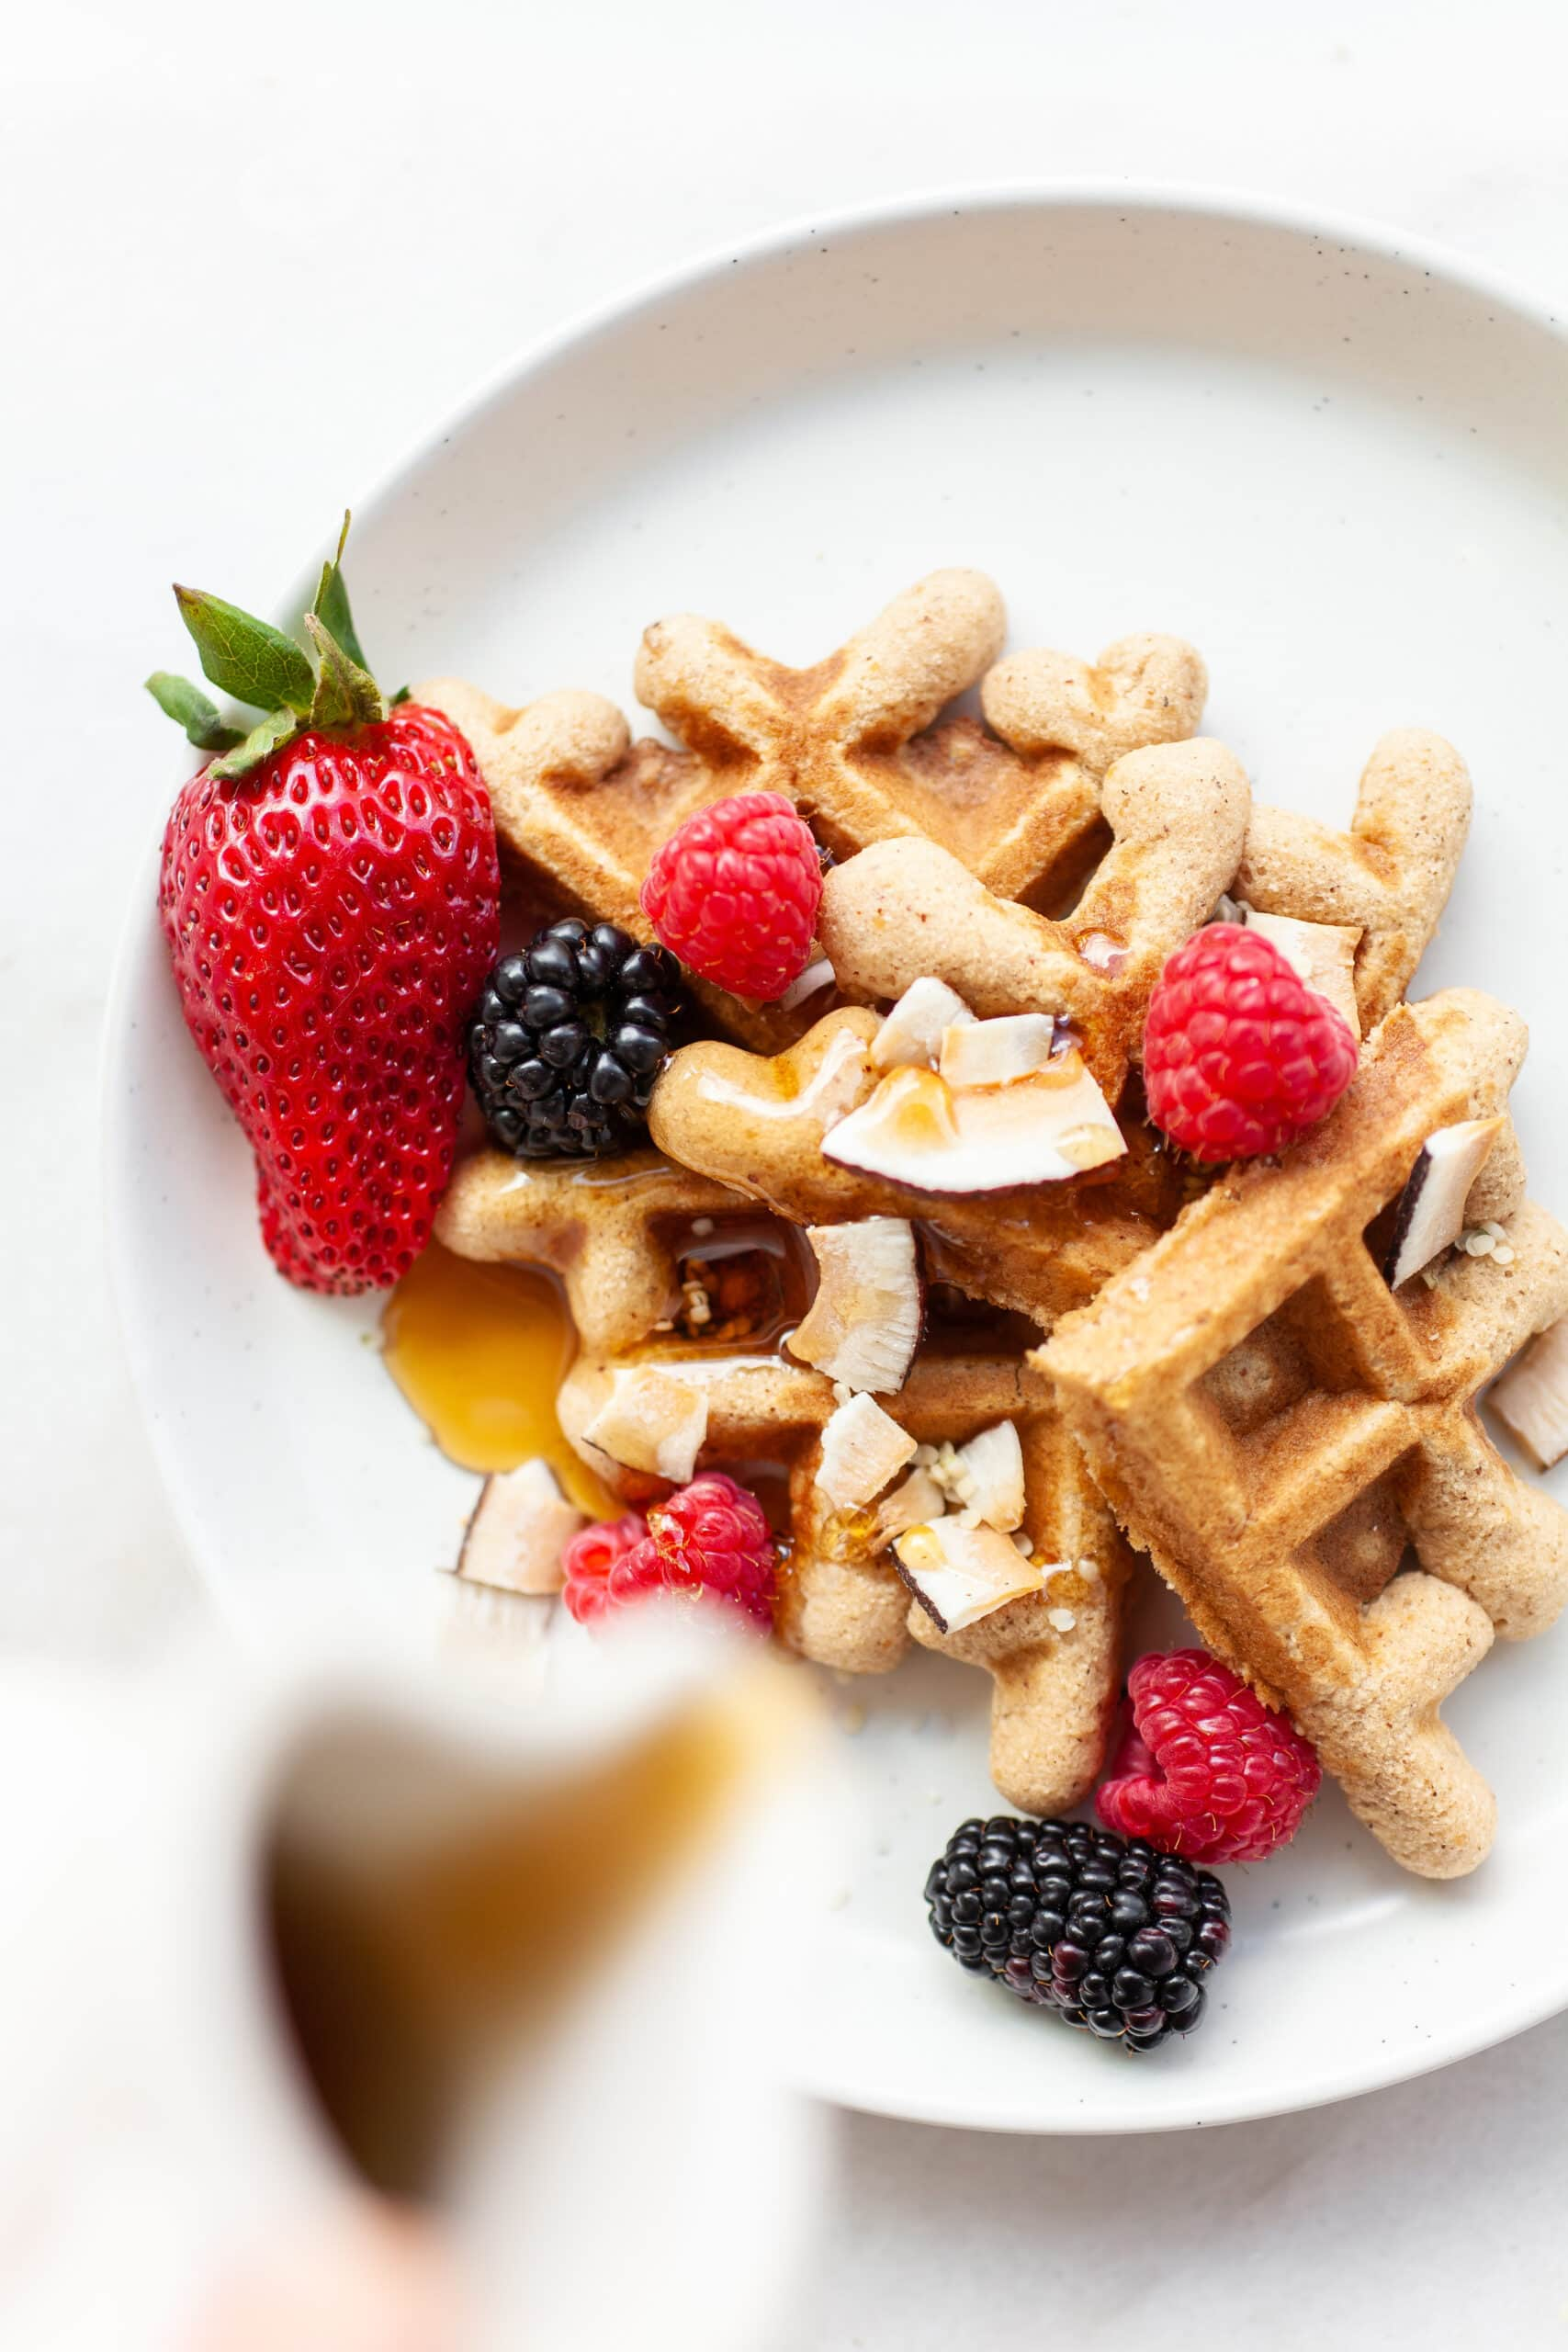 white plate with pieces of Easy Coconut Flour Waffles topped with berries and maple syrup